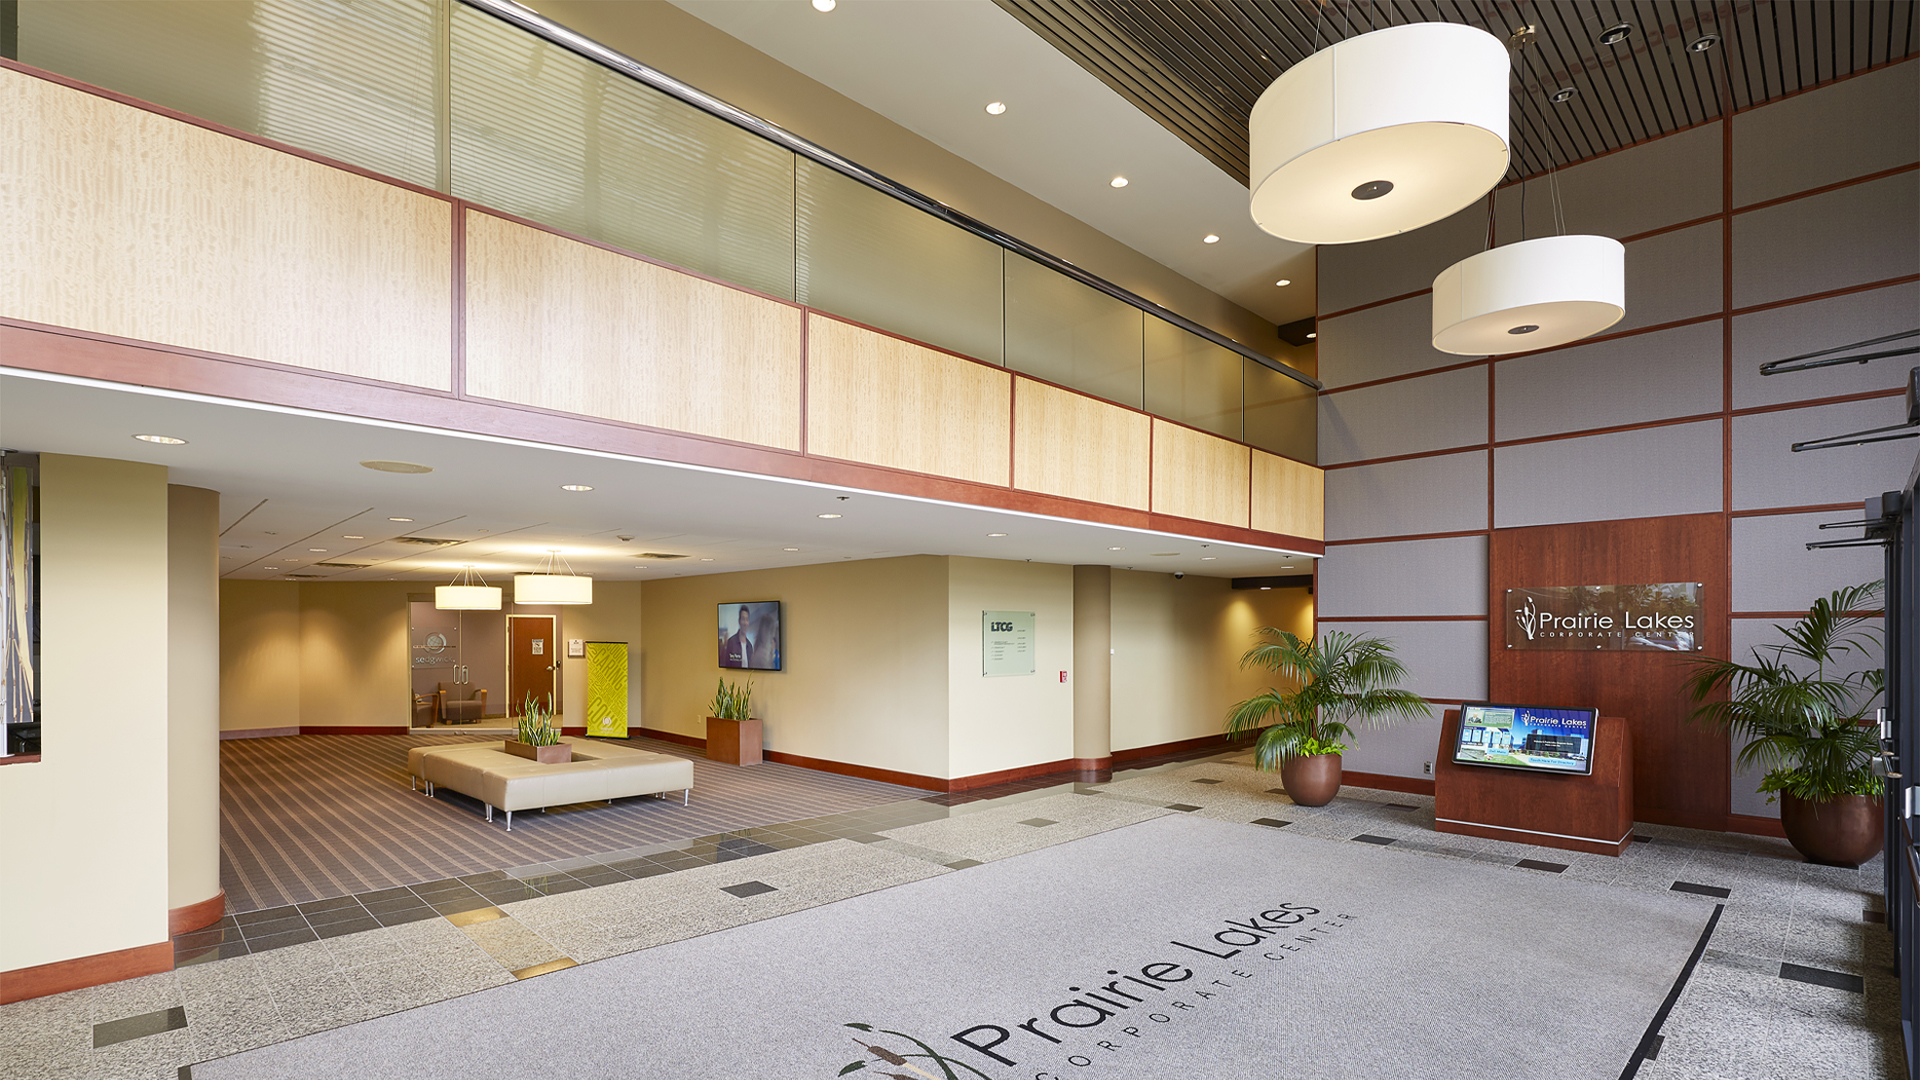 Prairie Lakes Corporate Center I and II office building interior entrance lobby